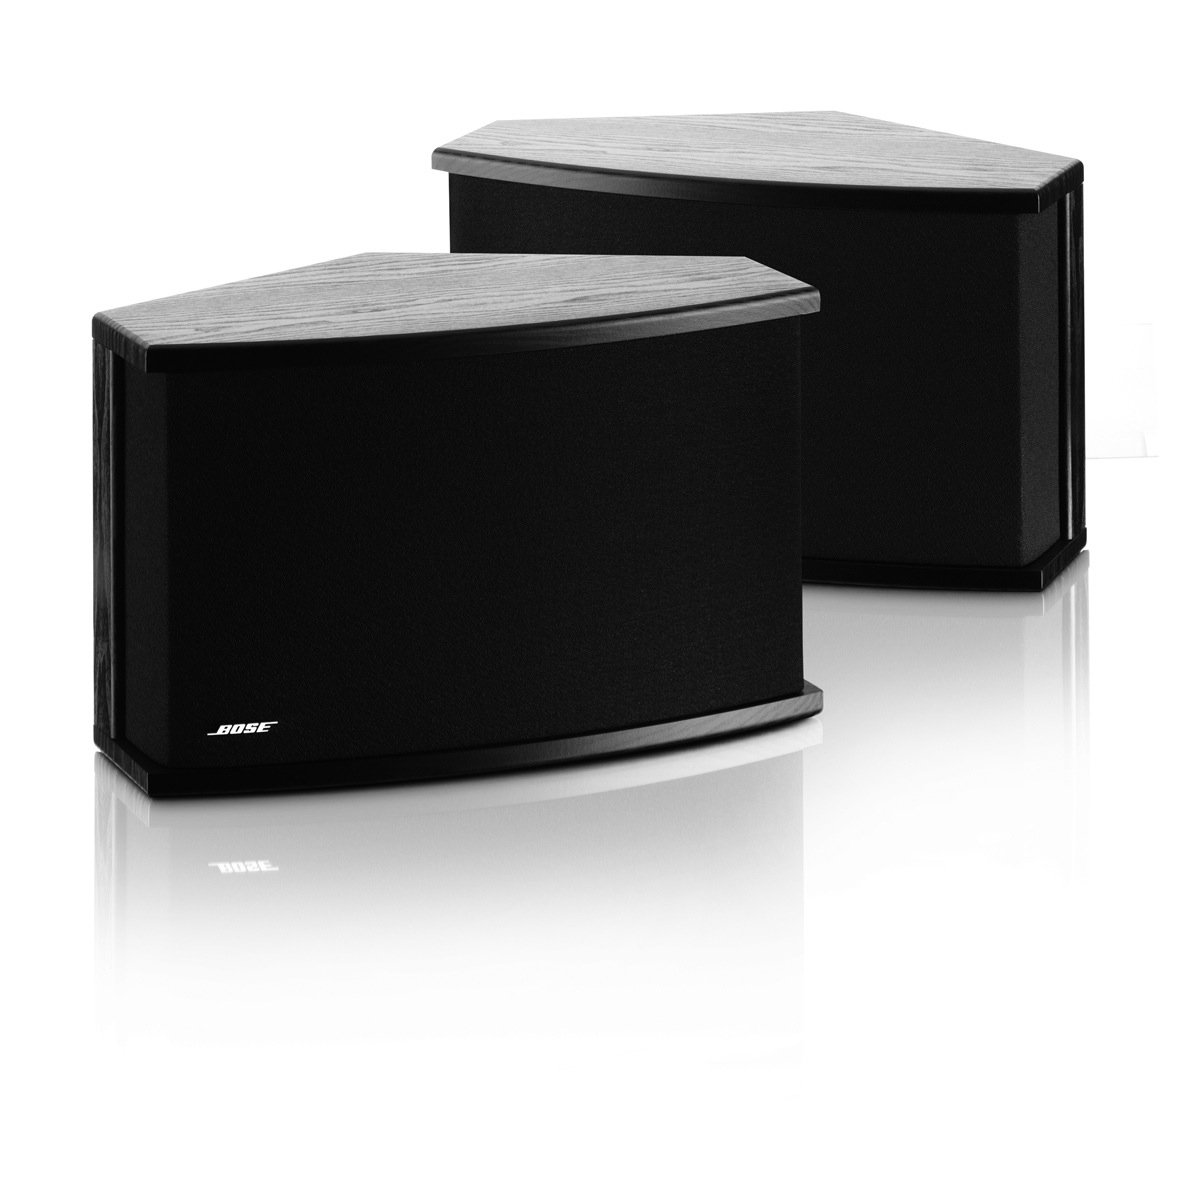 Amazon.com: Bose 901 Series VI Direct/Reflecting Speaker System, Black,  Pair: Home Audio & Theater